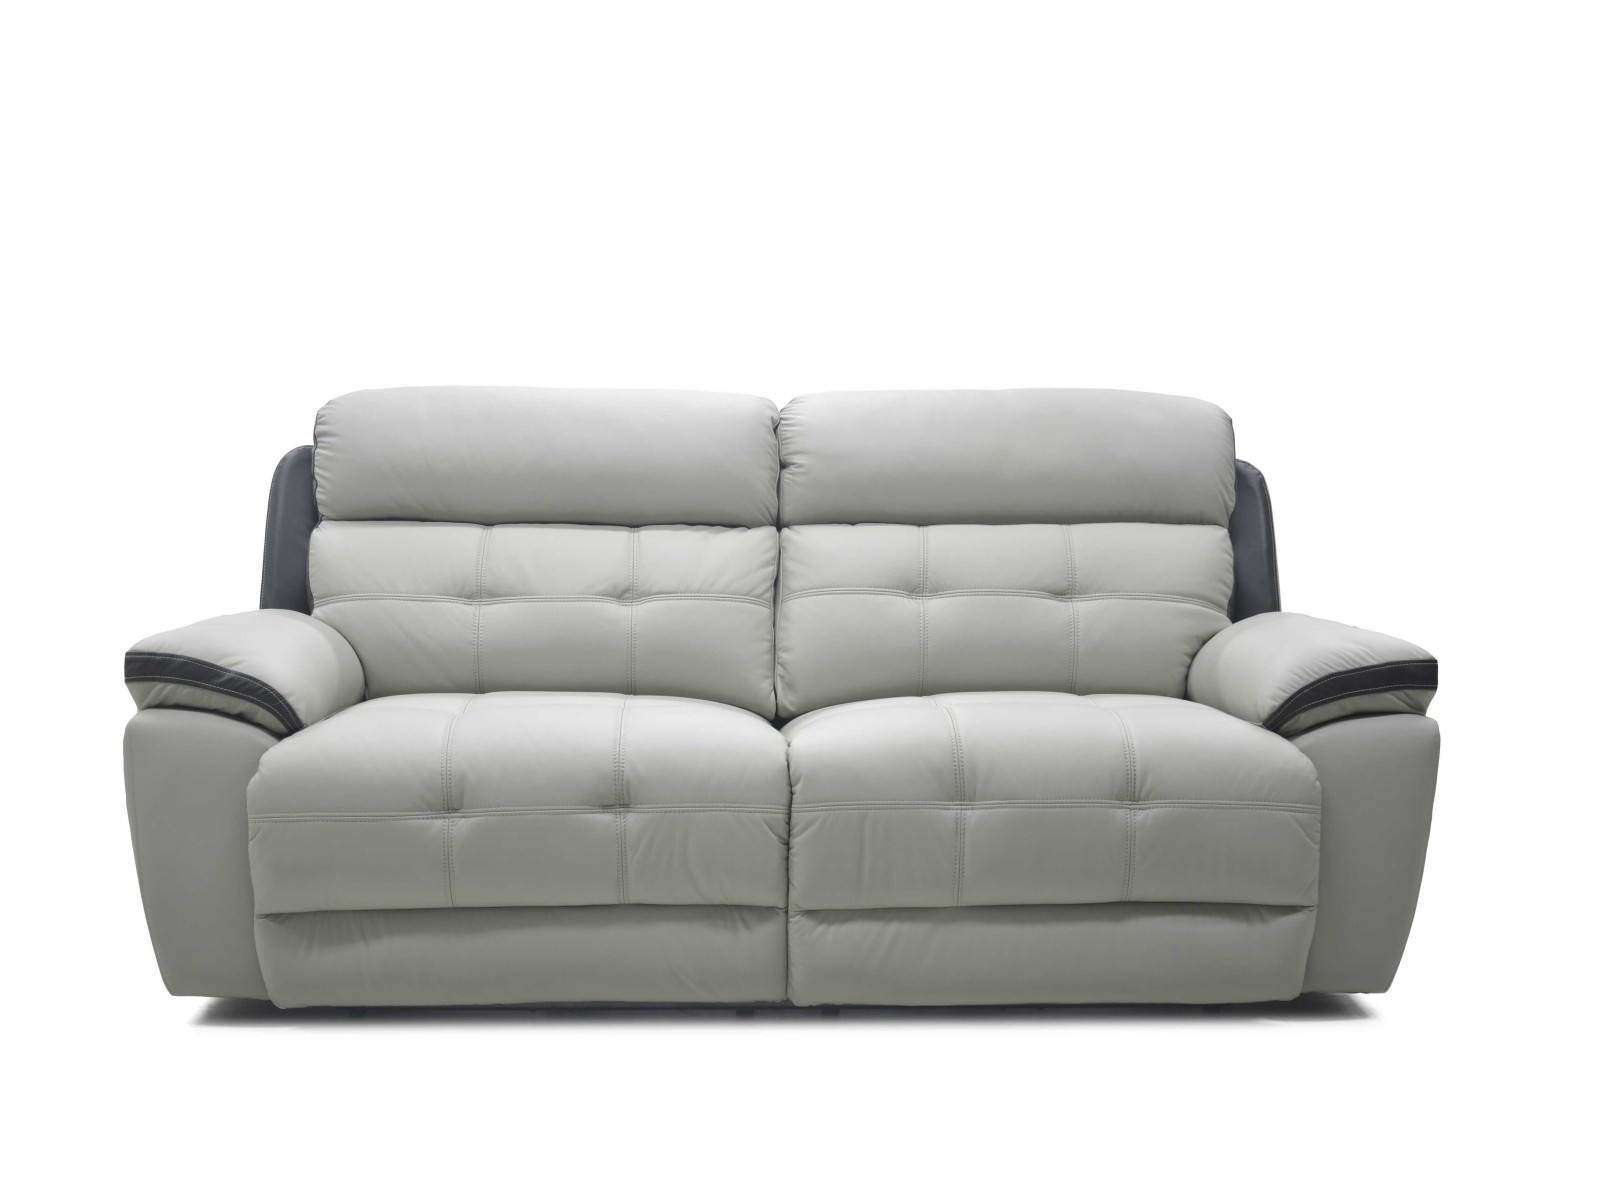 Power Reclining Sofa Vs Manual | Baci Living Room intended for Calder Grey 6 Piece Manual Reclining Sectionals (Image 24 of 30)